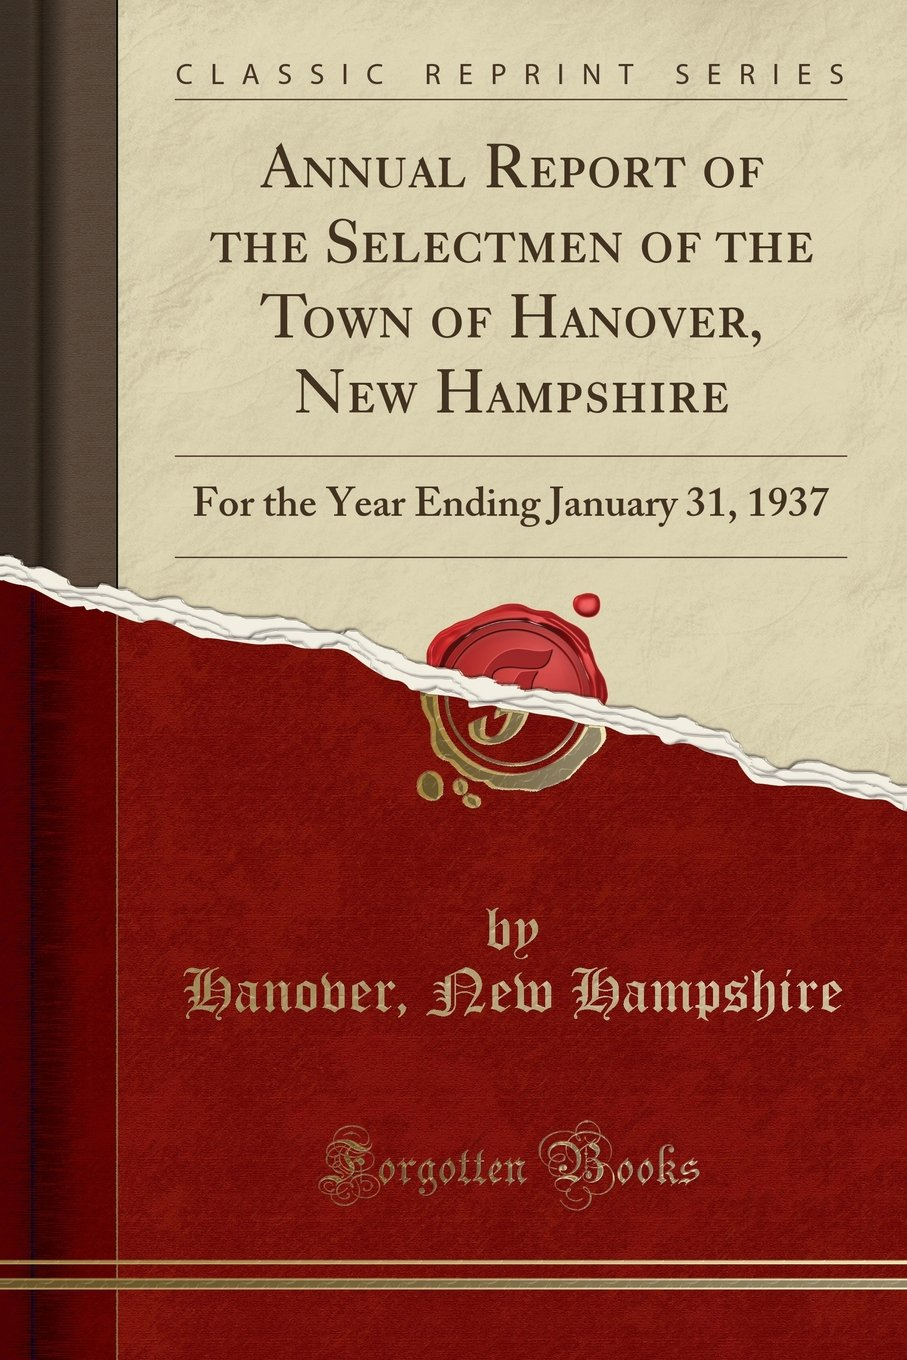 Annual Report of the Selectmen of the Town of Hanover, New Hampshire: For the Year Ending January 31, 1937 (Classic Reprint) PDF